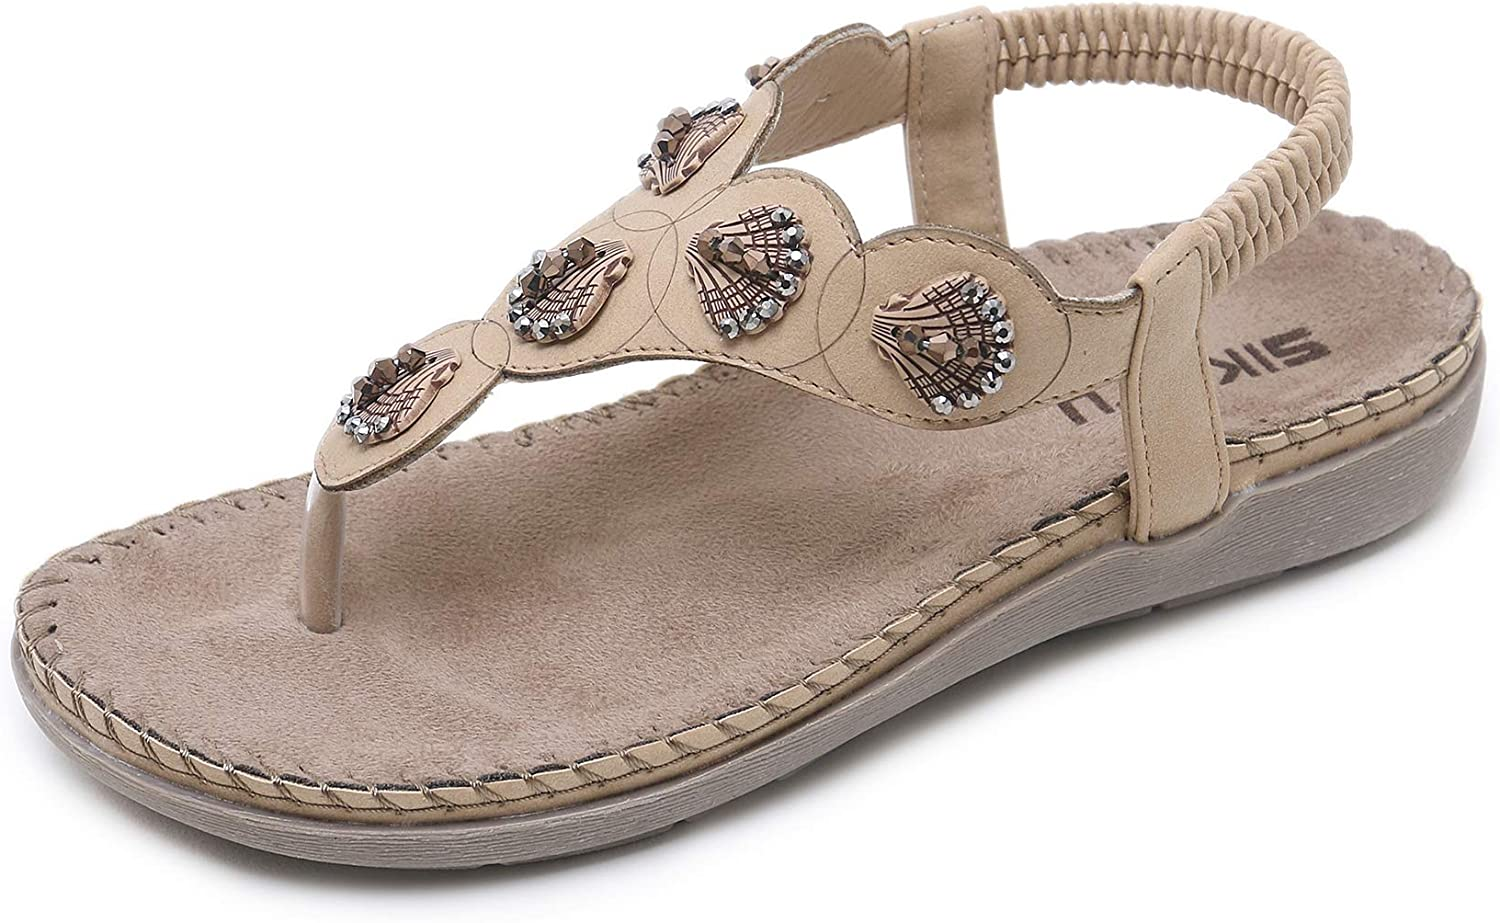 Womens Cross Toe Double Buckle Strap Summer Leather Flat Sandals